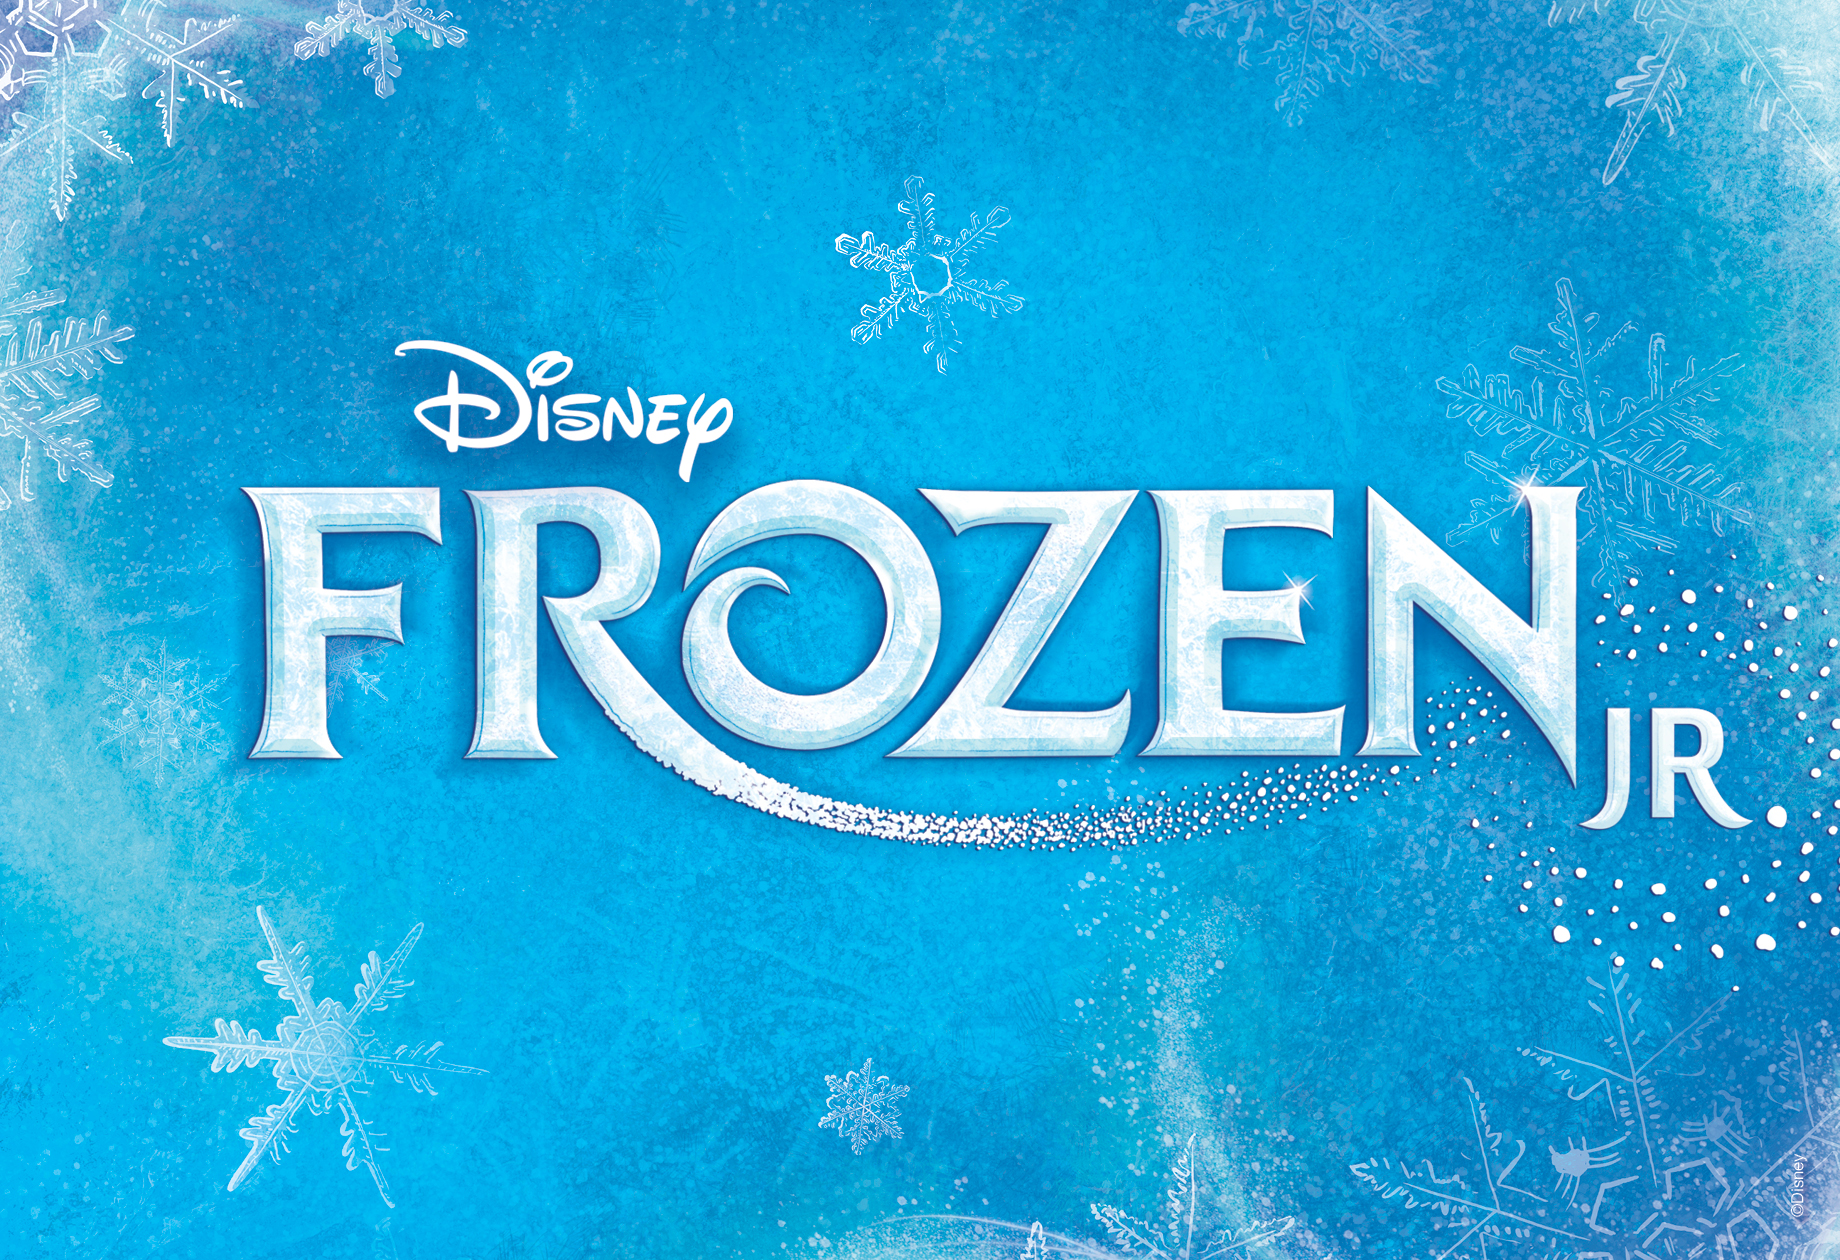 A story of true love and acceptance between sisters,  Frozen JR.  expands upon the emotional relationship and journey between Princesses Anna and Elsa. When faced with danger, the two discover their hidden potential and the powerful bond of sisterhood. With a cast of beloved characters and loaded with magic, adventure, and plenty of humor,  Frozen JR.  is sure to thaw even the coldest heart!